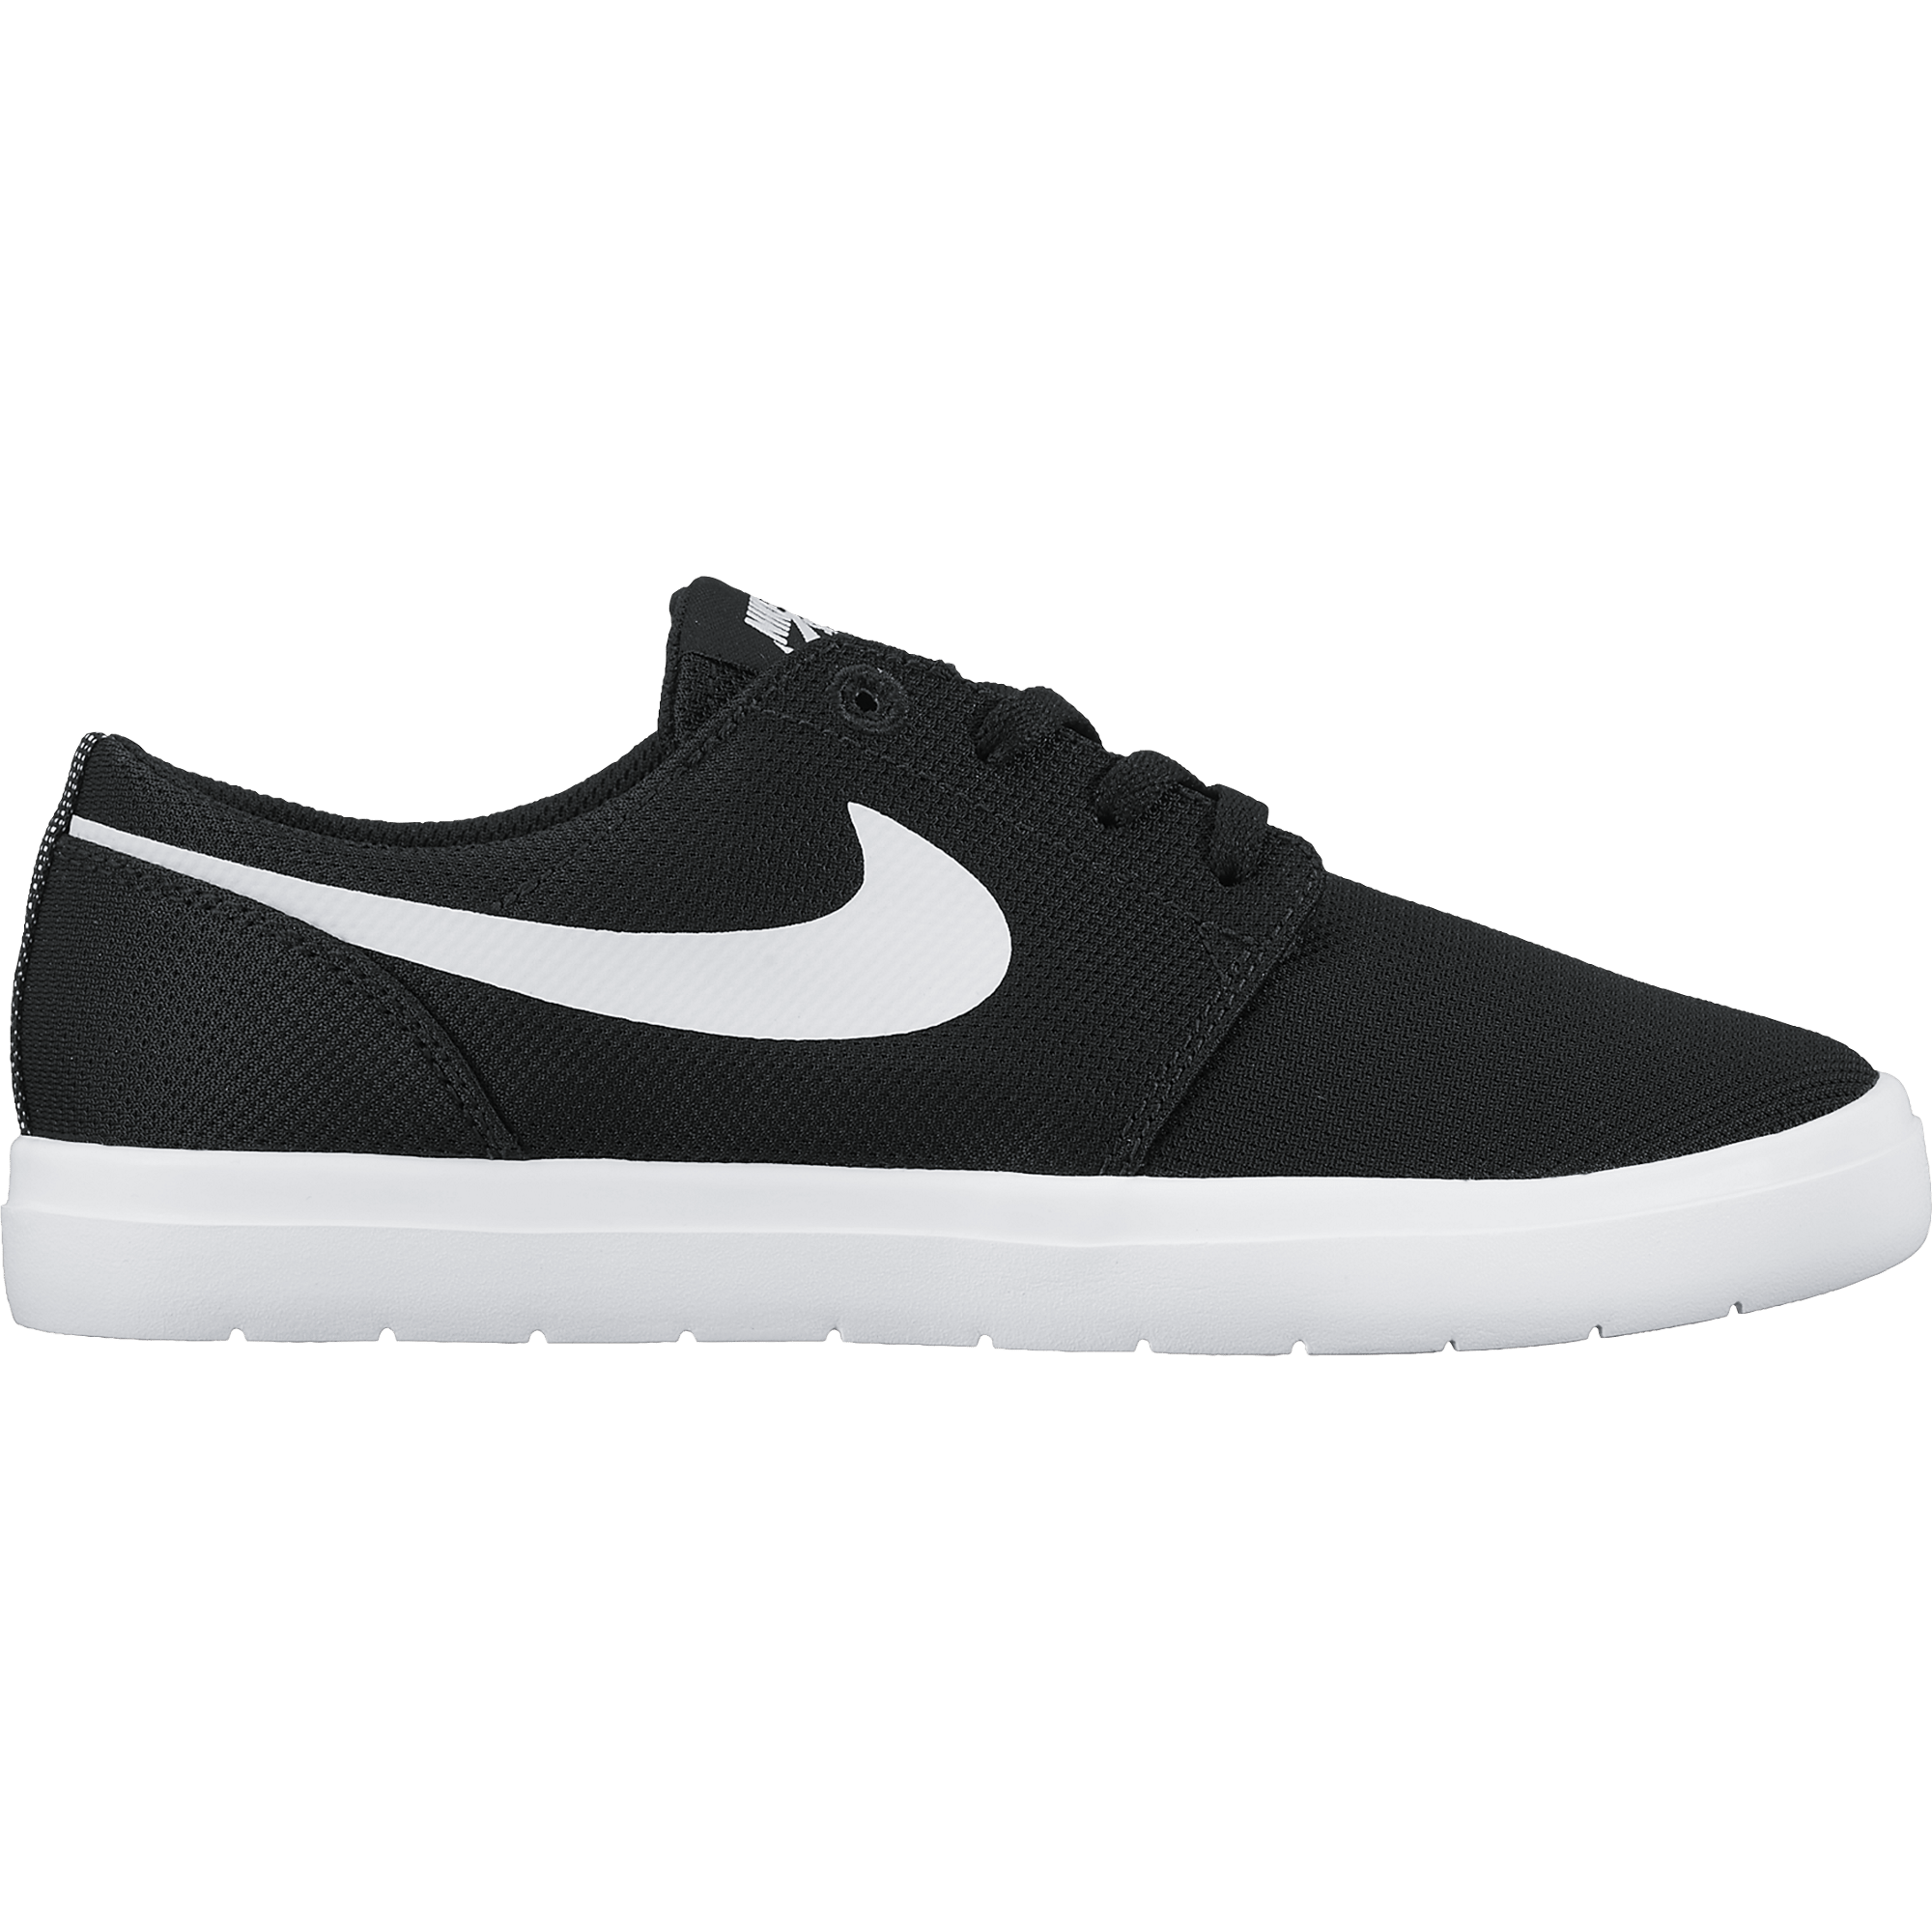 newest 8ae06 ef737 ... Stefan Janoski Max Shoes - Wolf Grey Black New Free Delivery Nike SB  Portmore II Ultralight Kids Shoes - Black White .